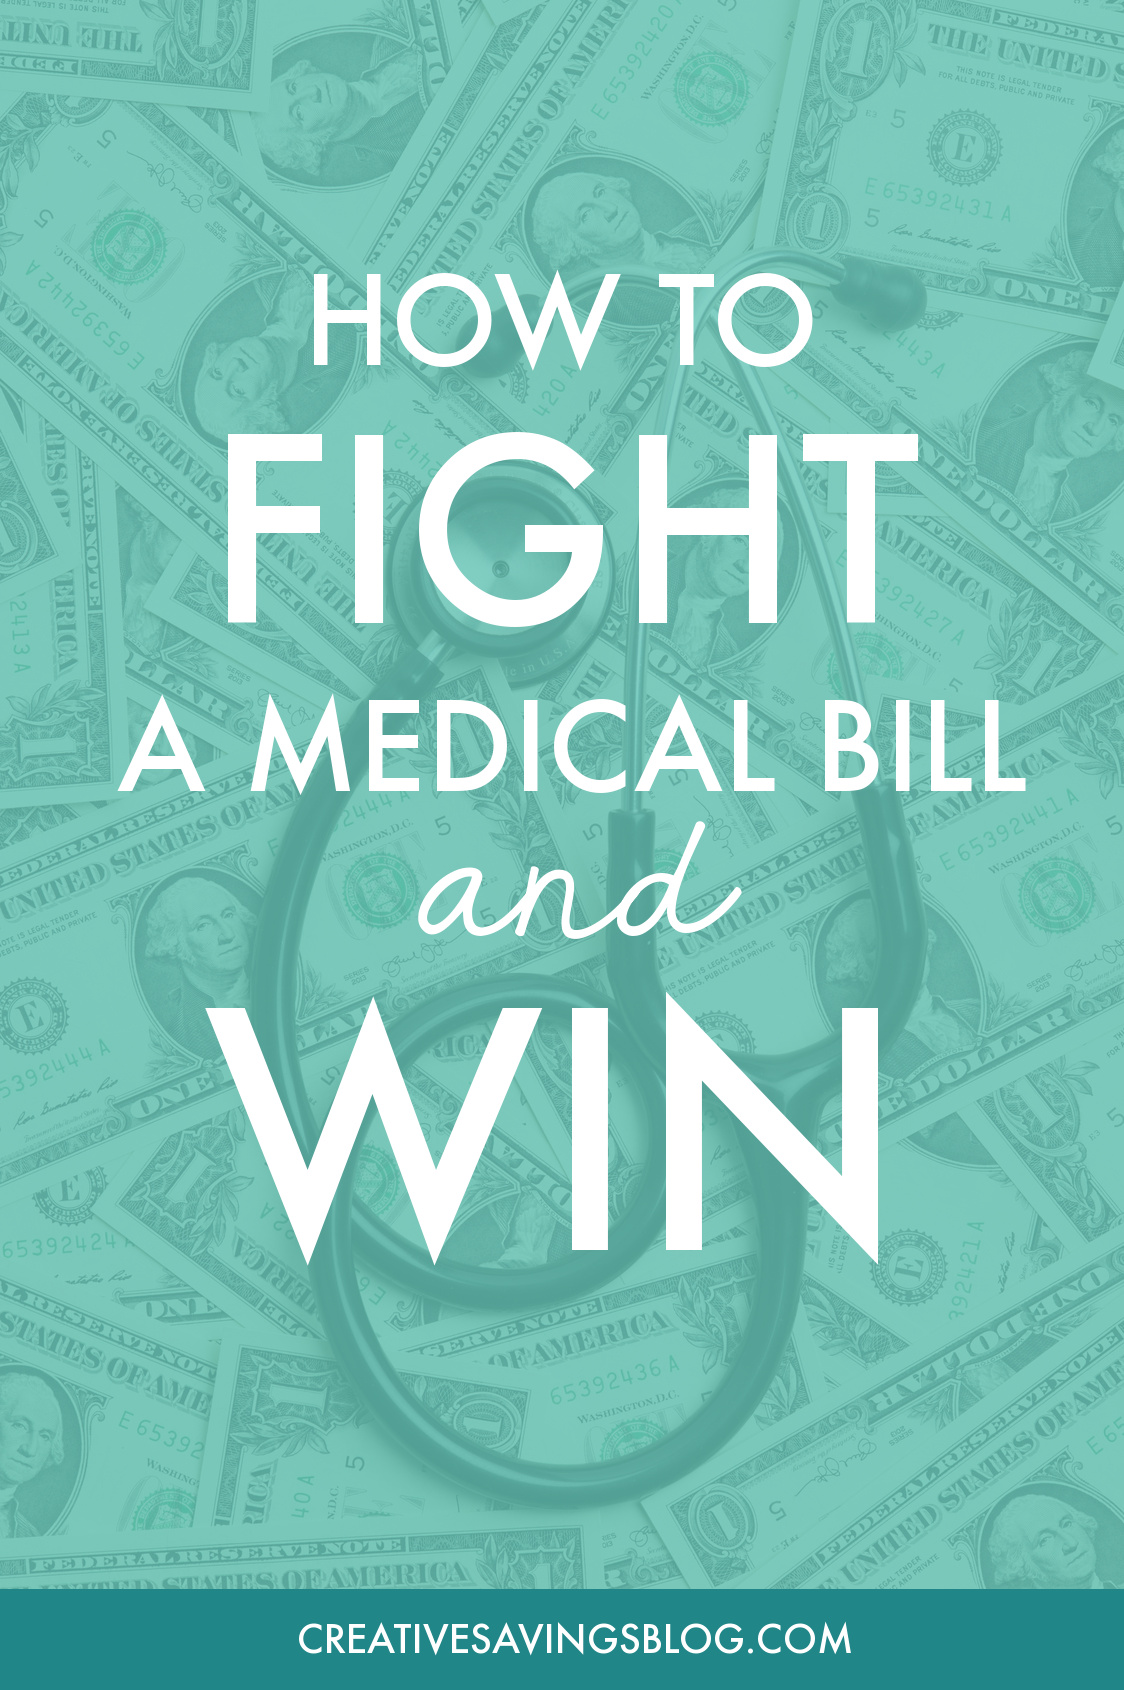 Last year I was slapped with a HUGE medical bill and it was so unfair. I decided to fight it and followed this step-by-step guide to disputing medical expenses and guess what? It absolutely worked!! If you have a medical bill or even medical debt I highly recommend you try this process! #medicalbill #medicalbills #unfairmedicalbill